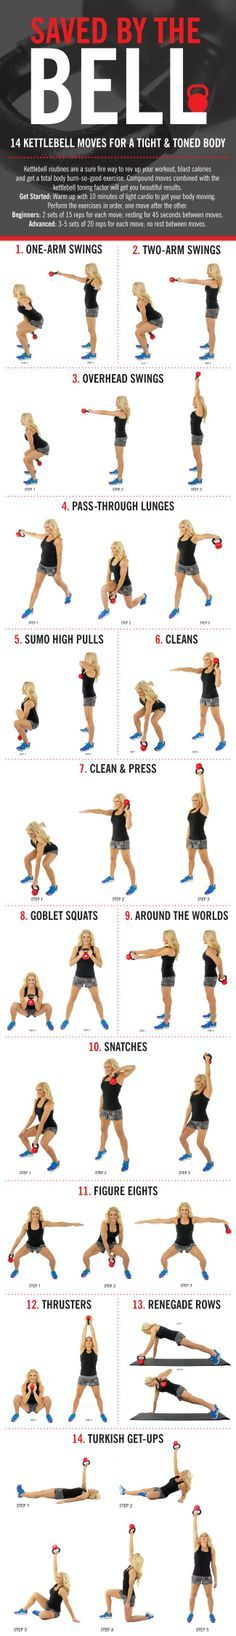 Keep this graphic handy when doing your workout!